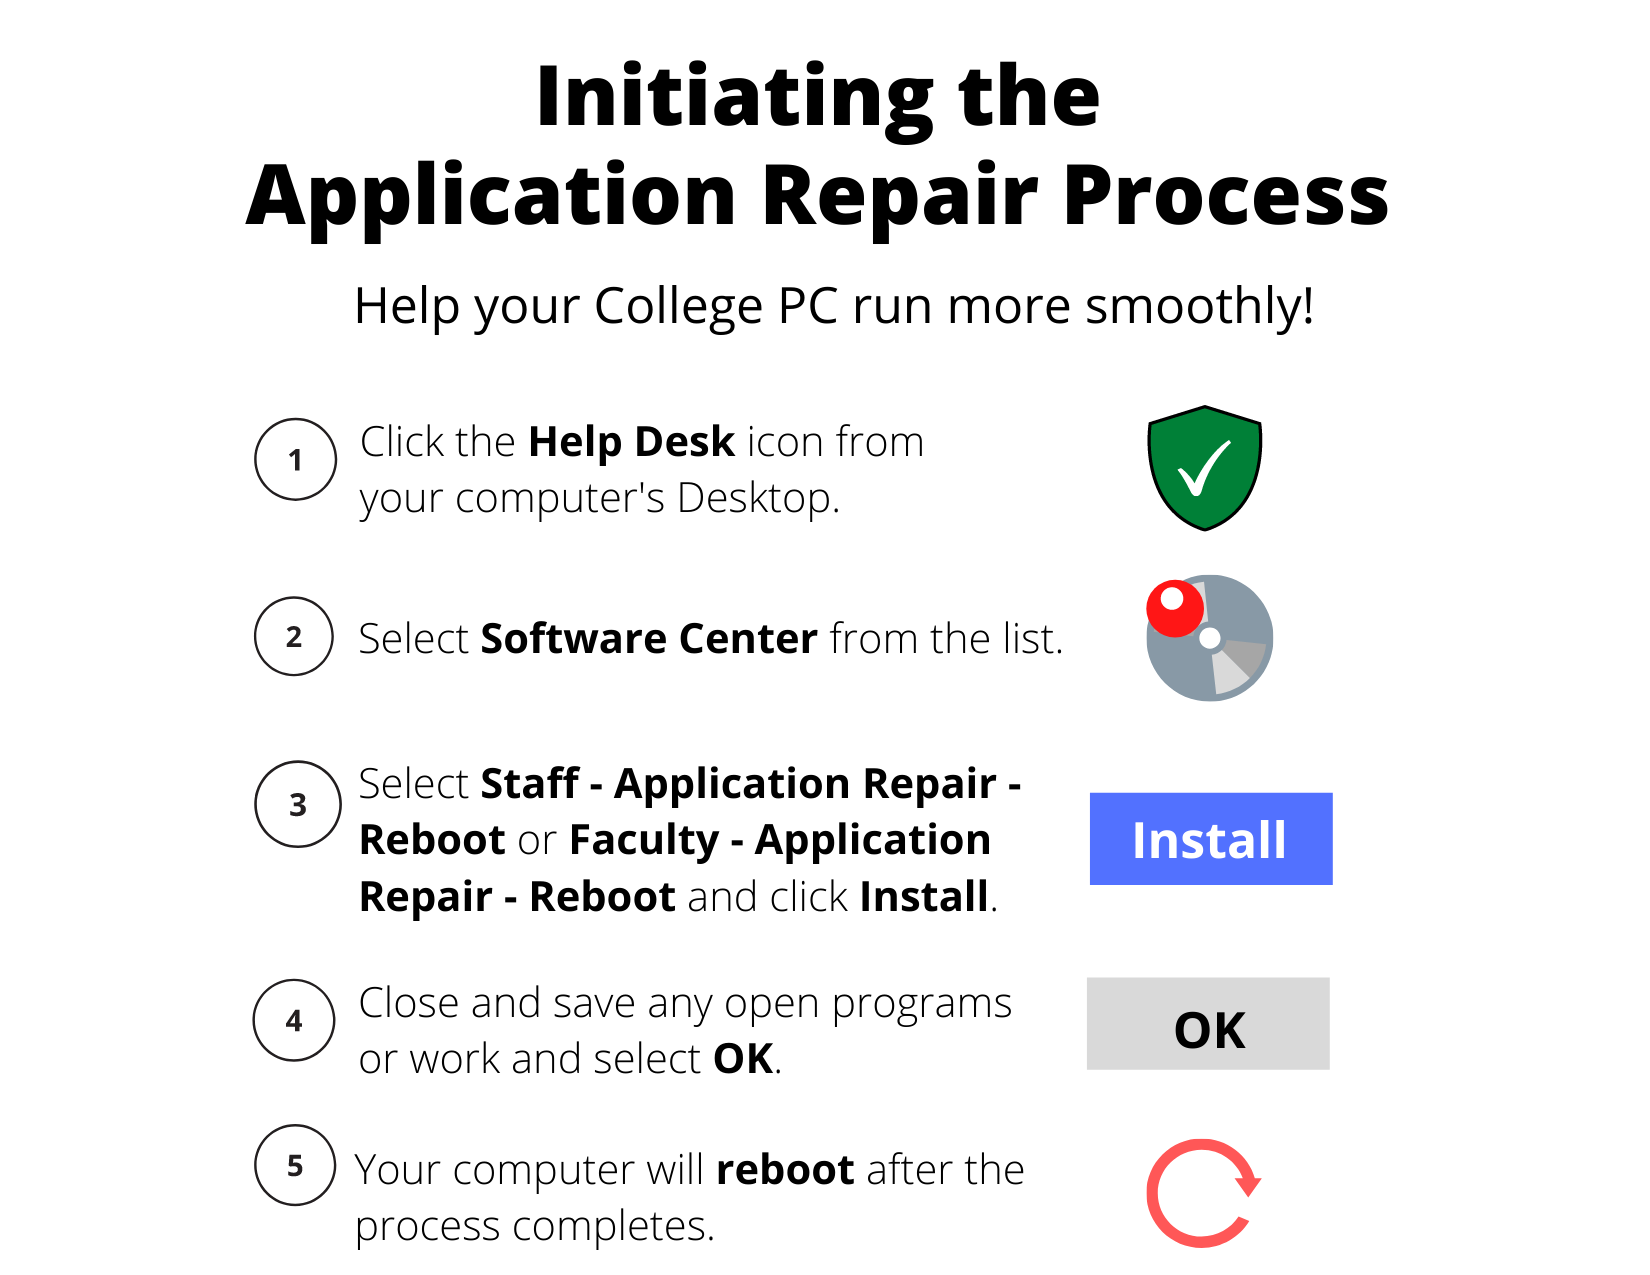 Initiating the Application Repair Process. Help your College PC run more smoothly! 1. Click the Help Desk icon from your Computer's desktop. 2. Select Software Center from the list. 3. Select Staff – Application Repair – Reboot or Faculty – Application Repair – Reboot and click Install. Close and save any open programs or work and select OK. 4. Your computer will reboot after the process completes.